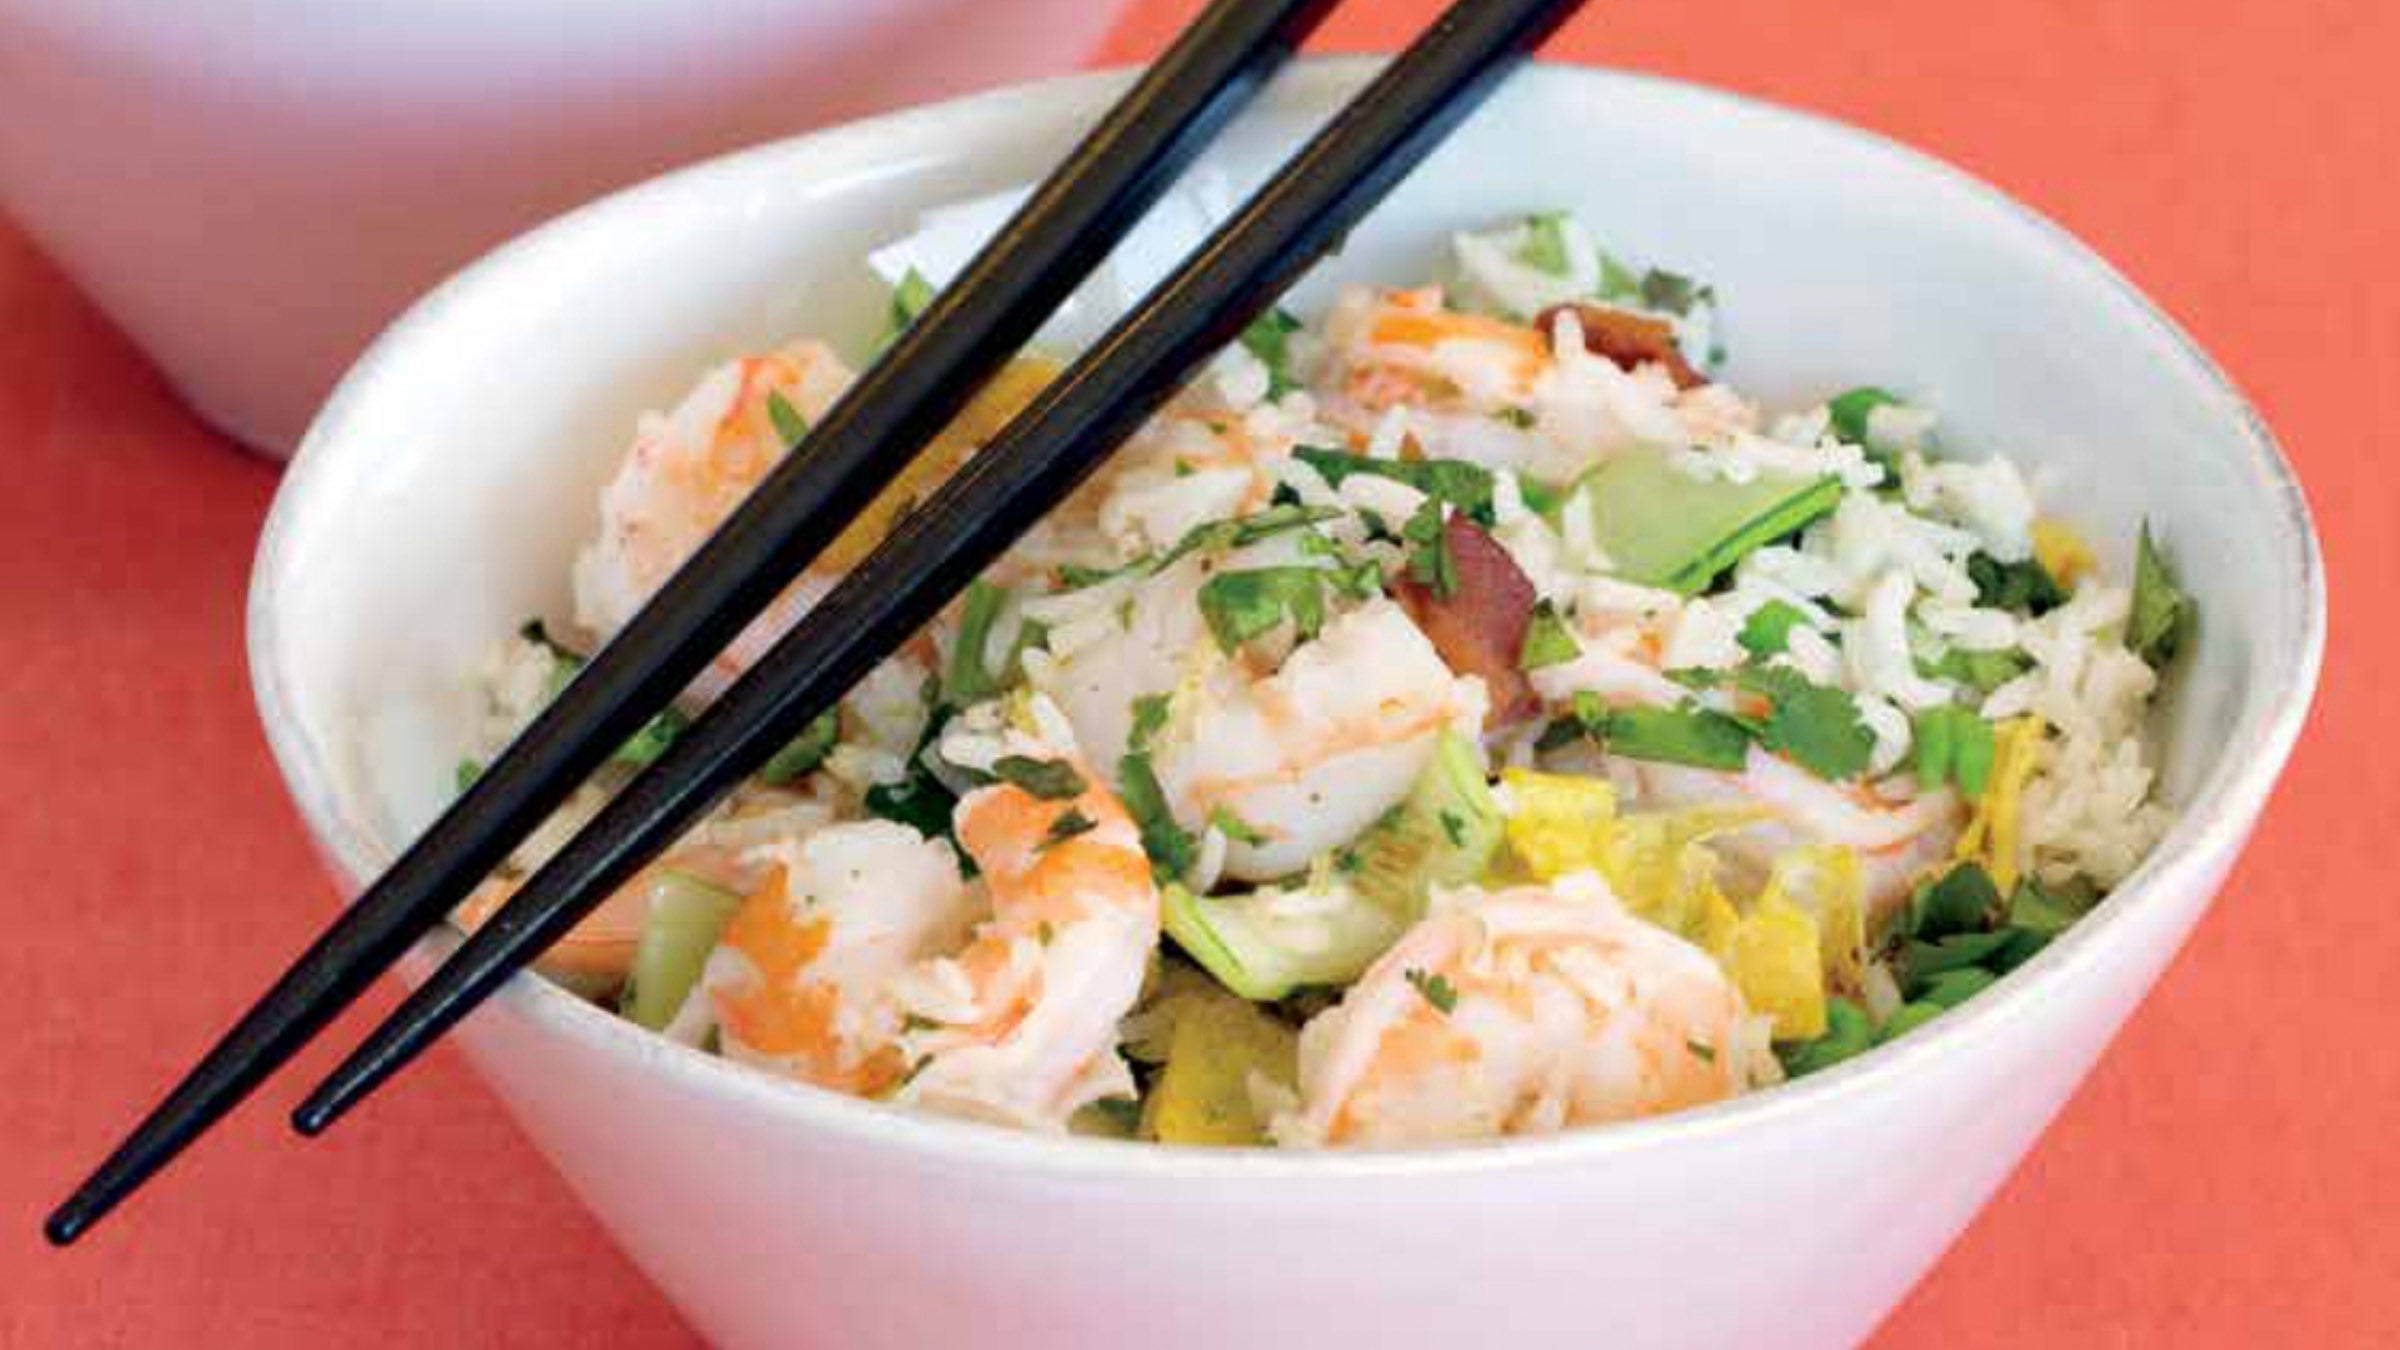 Try This Fried Rice with Shrimp Recipe After Your Next Workout